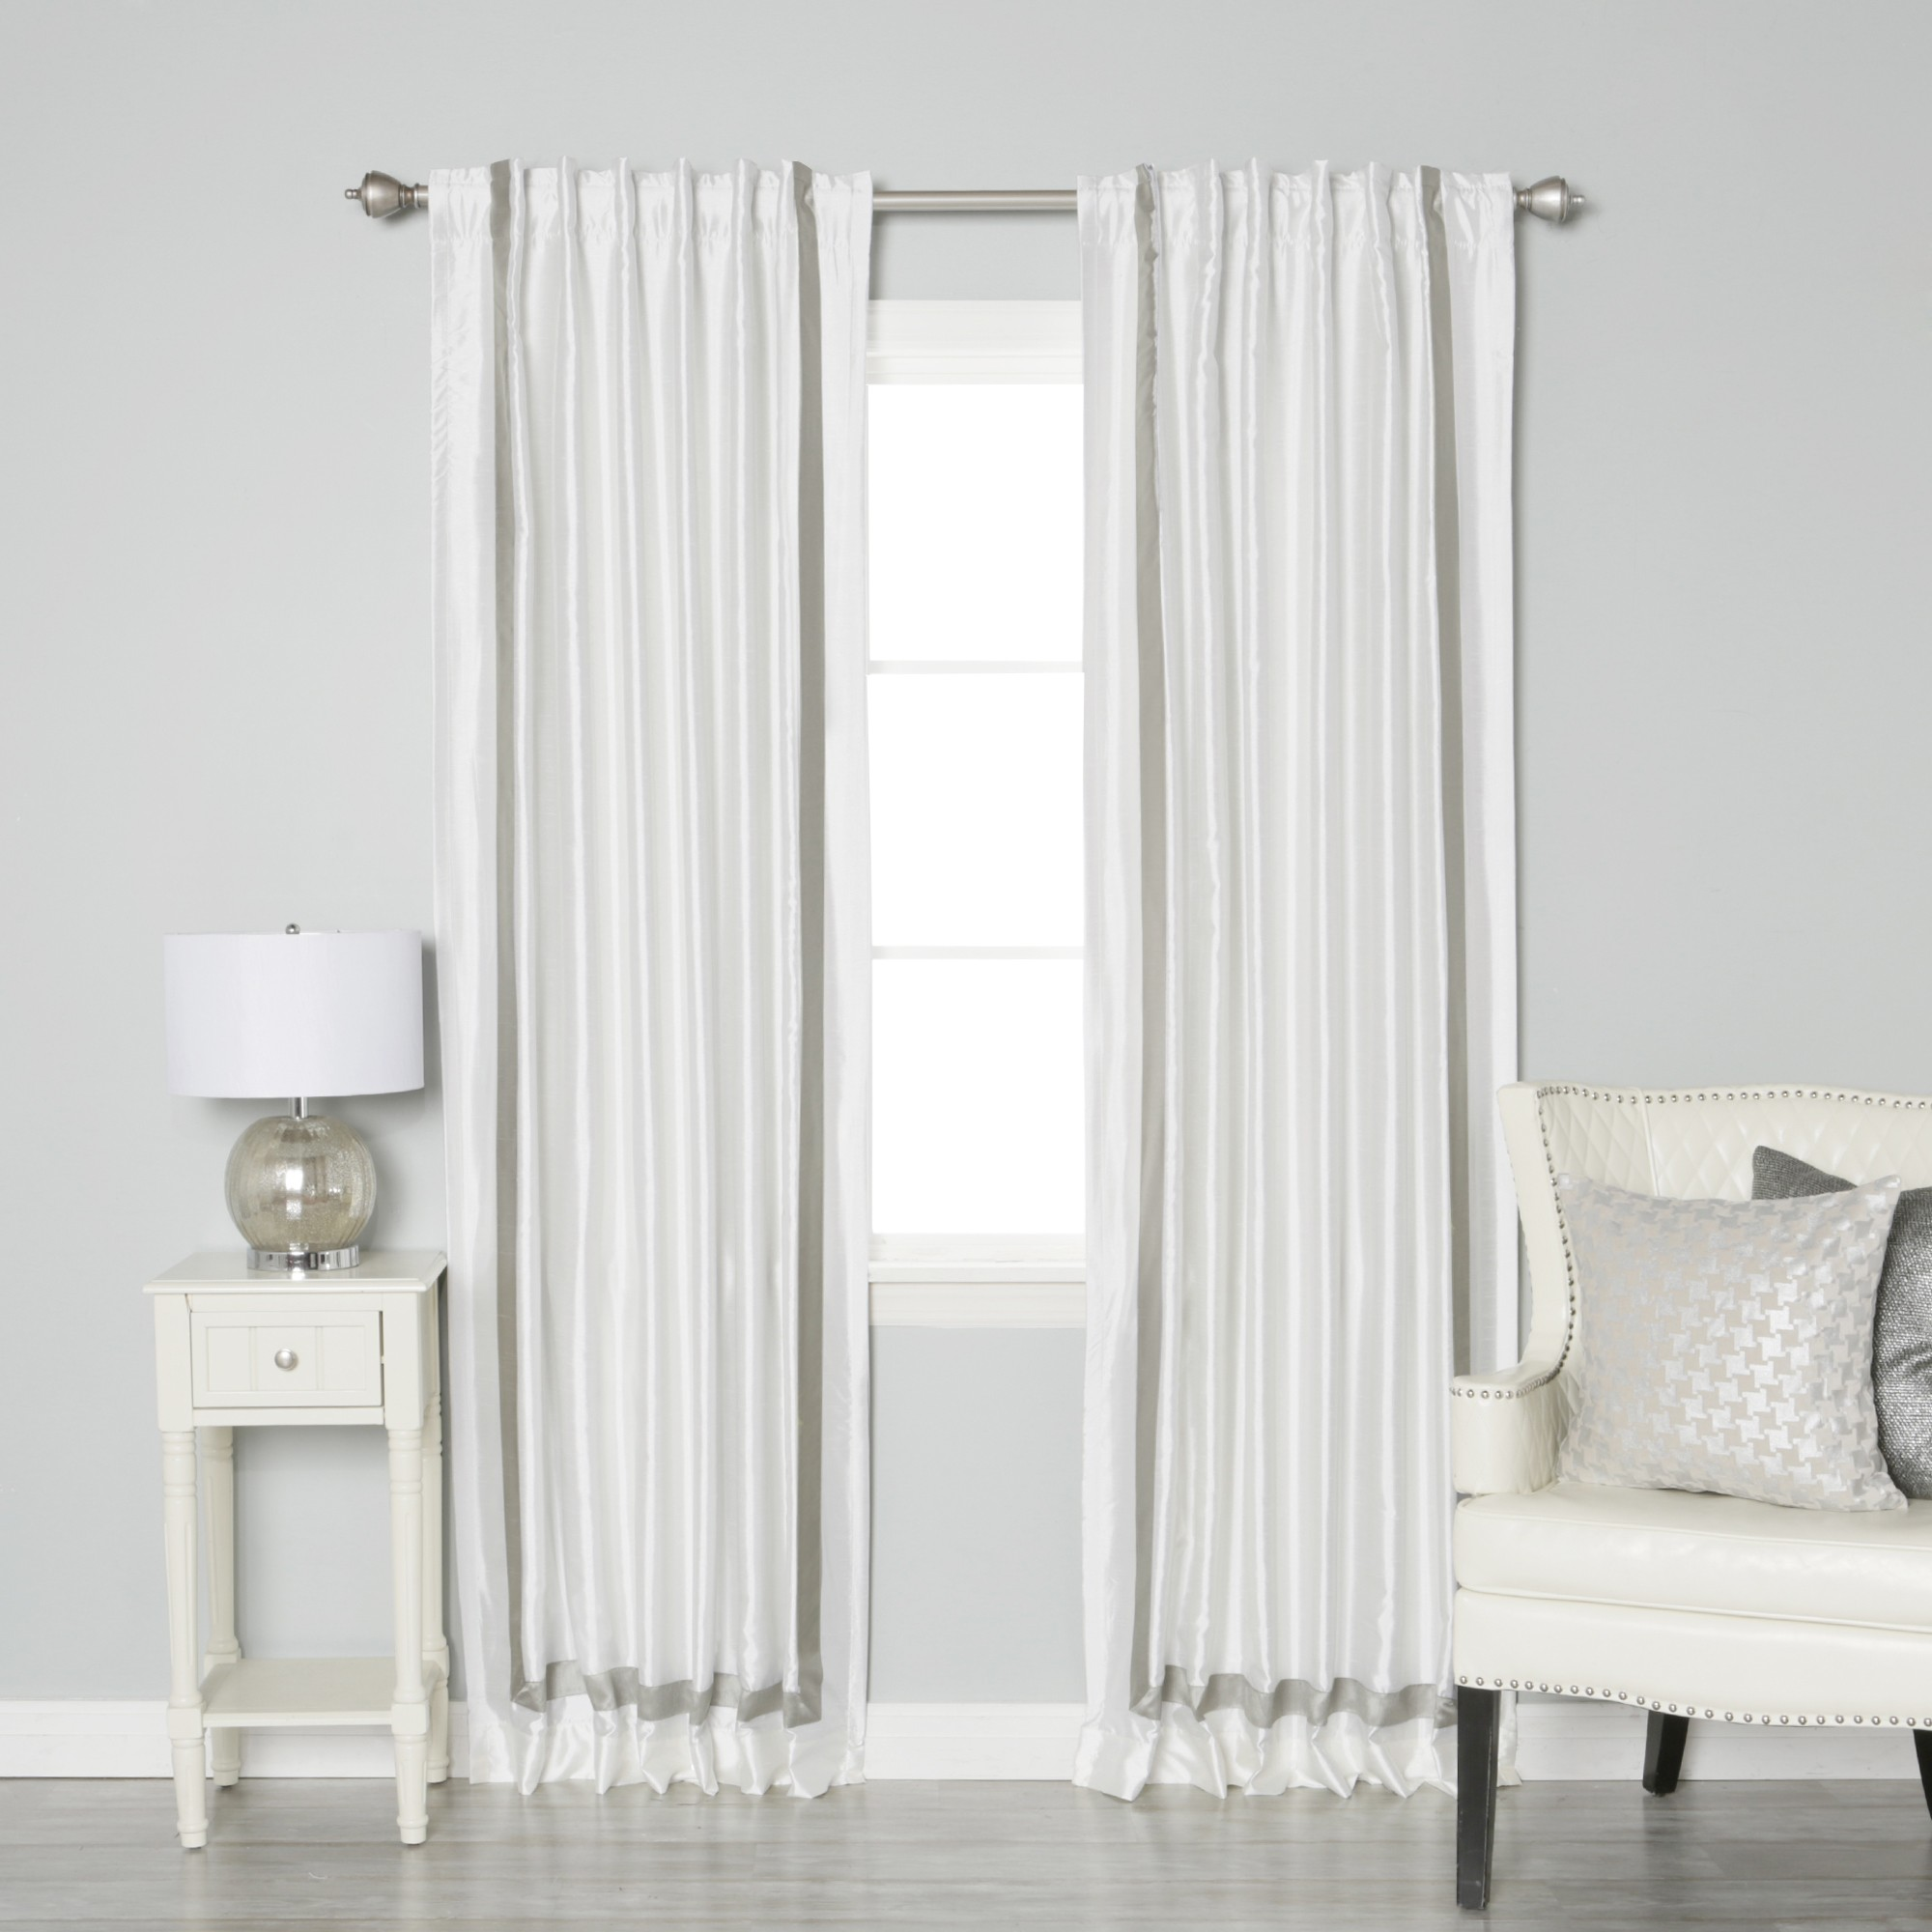 Thermal Insulated Curtains | Blackout Insulated Curtains | Insulated Window Drapes